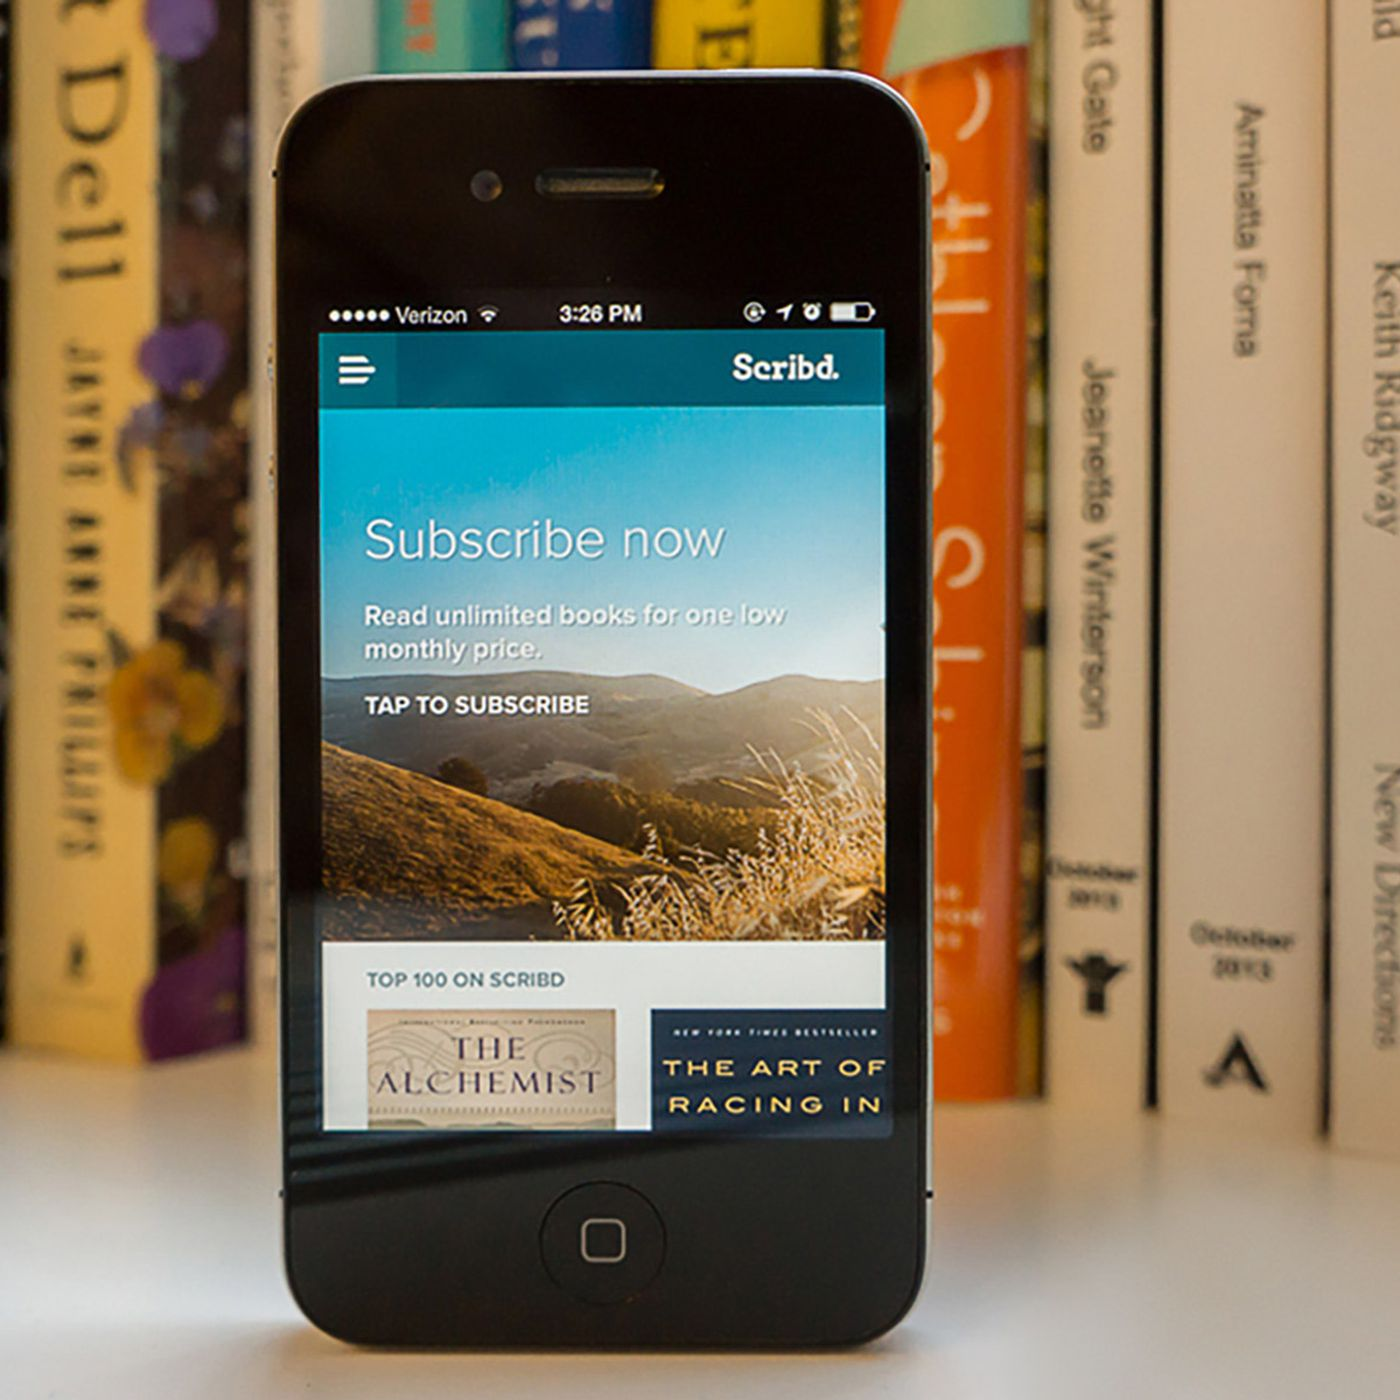 Scribd brings back its unlimited ebooks and audiobooks subscription